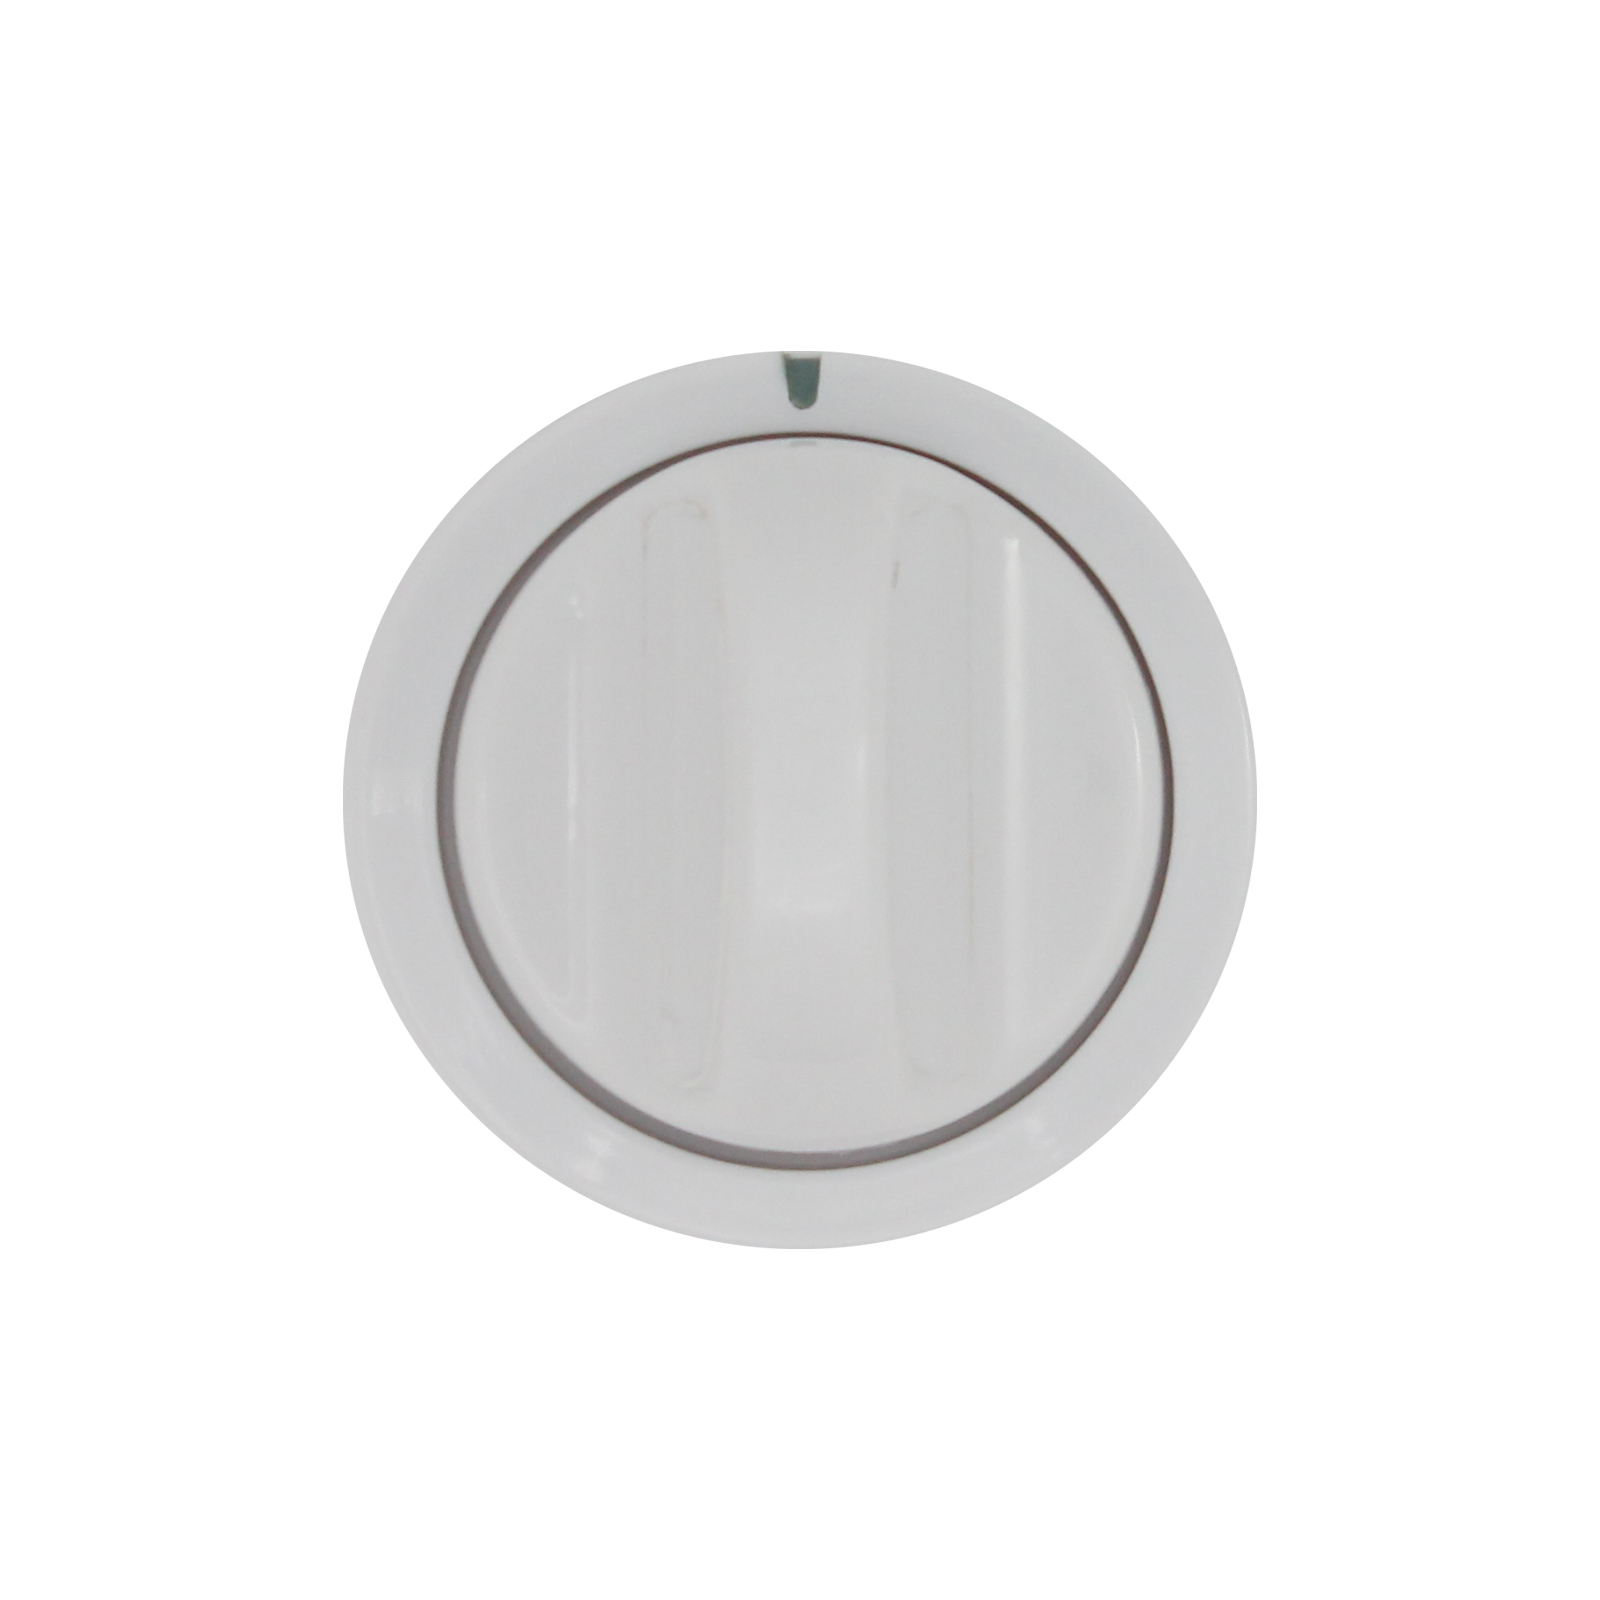 Replacement Dryer Timer Knob 131873500 for Frigidaire GSGQ642DS0 Residential Dryer - image 1 of 4